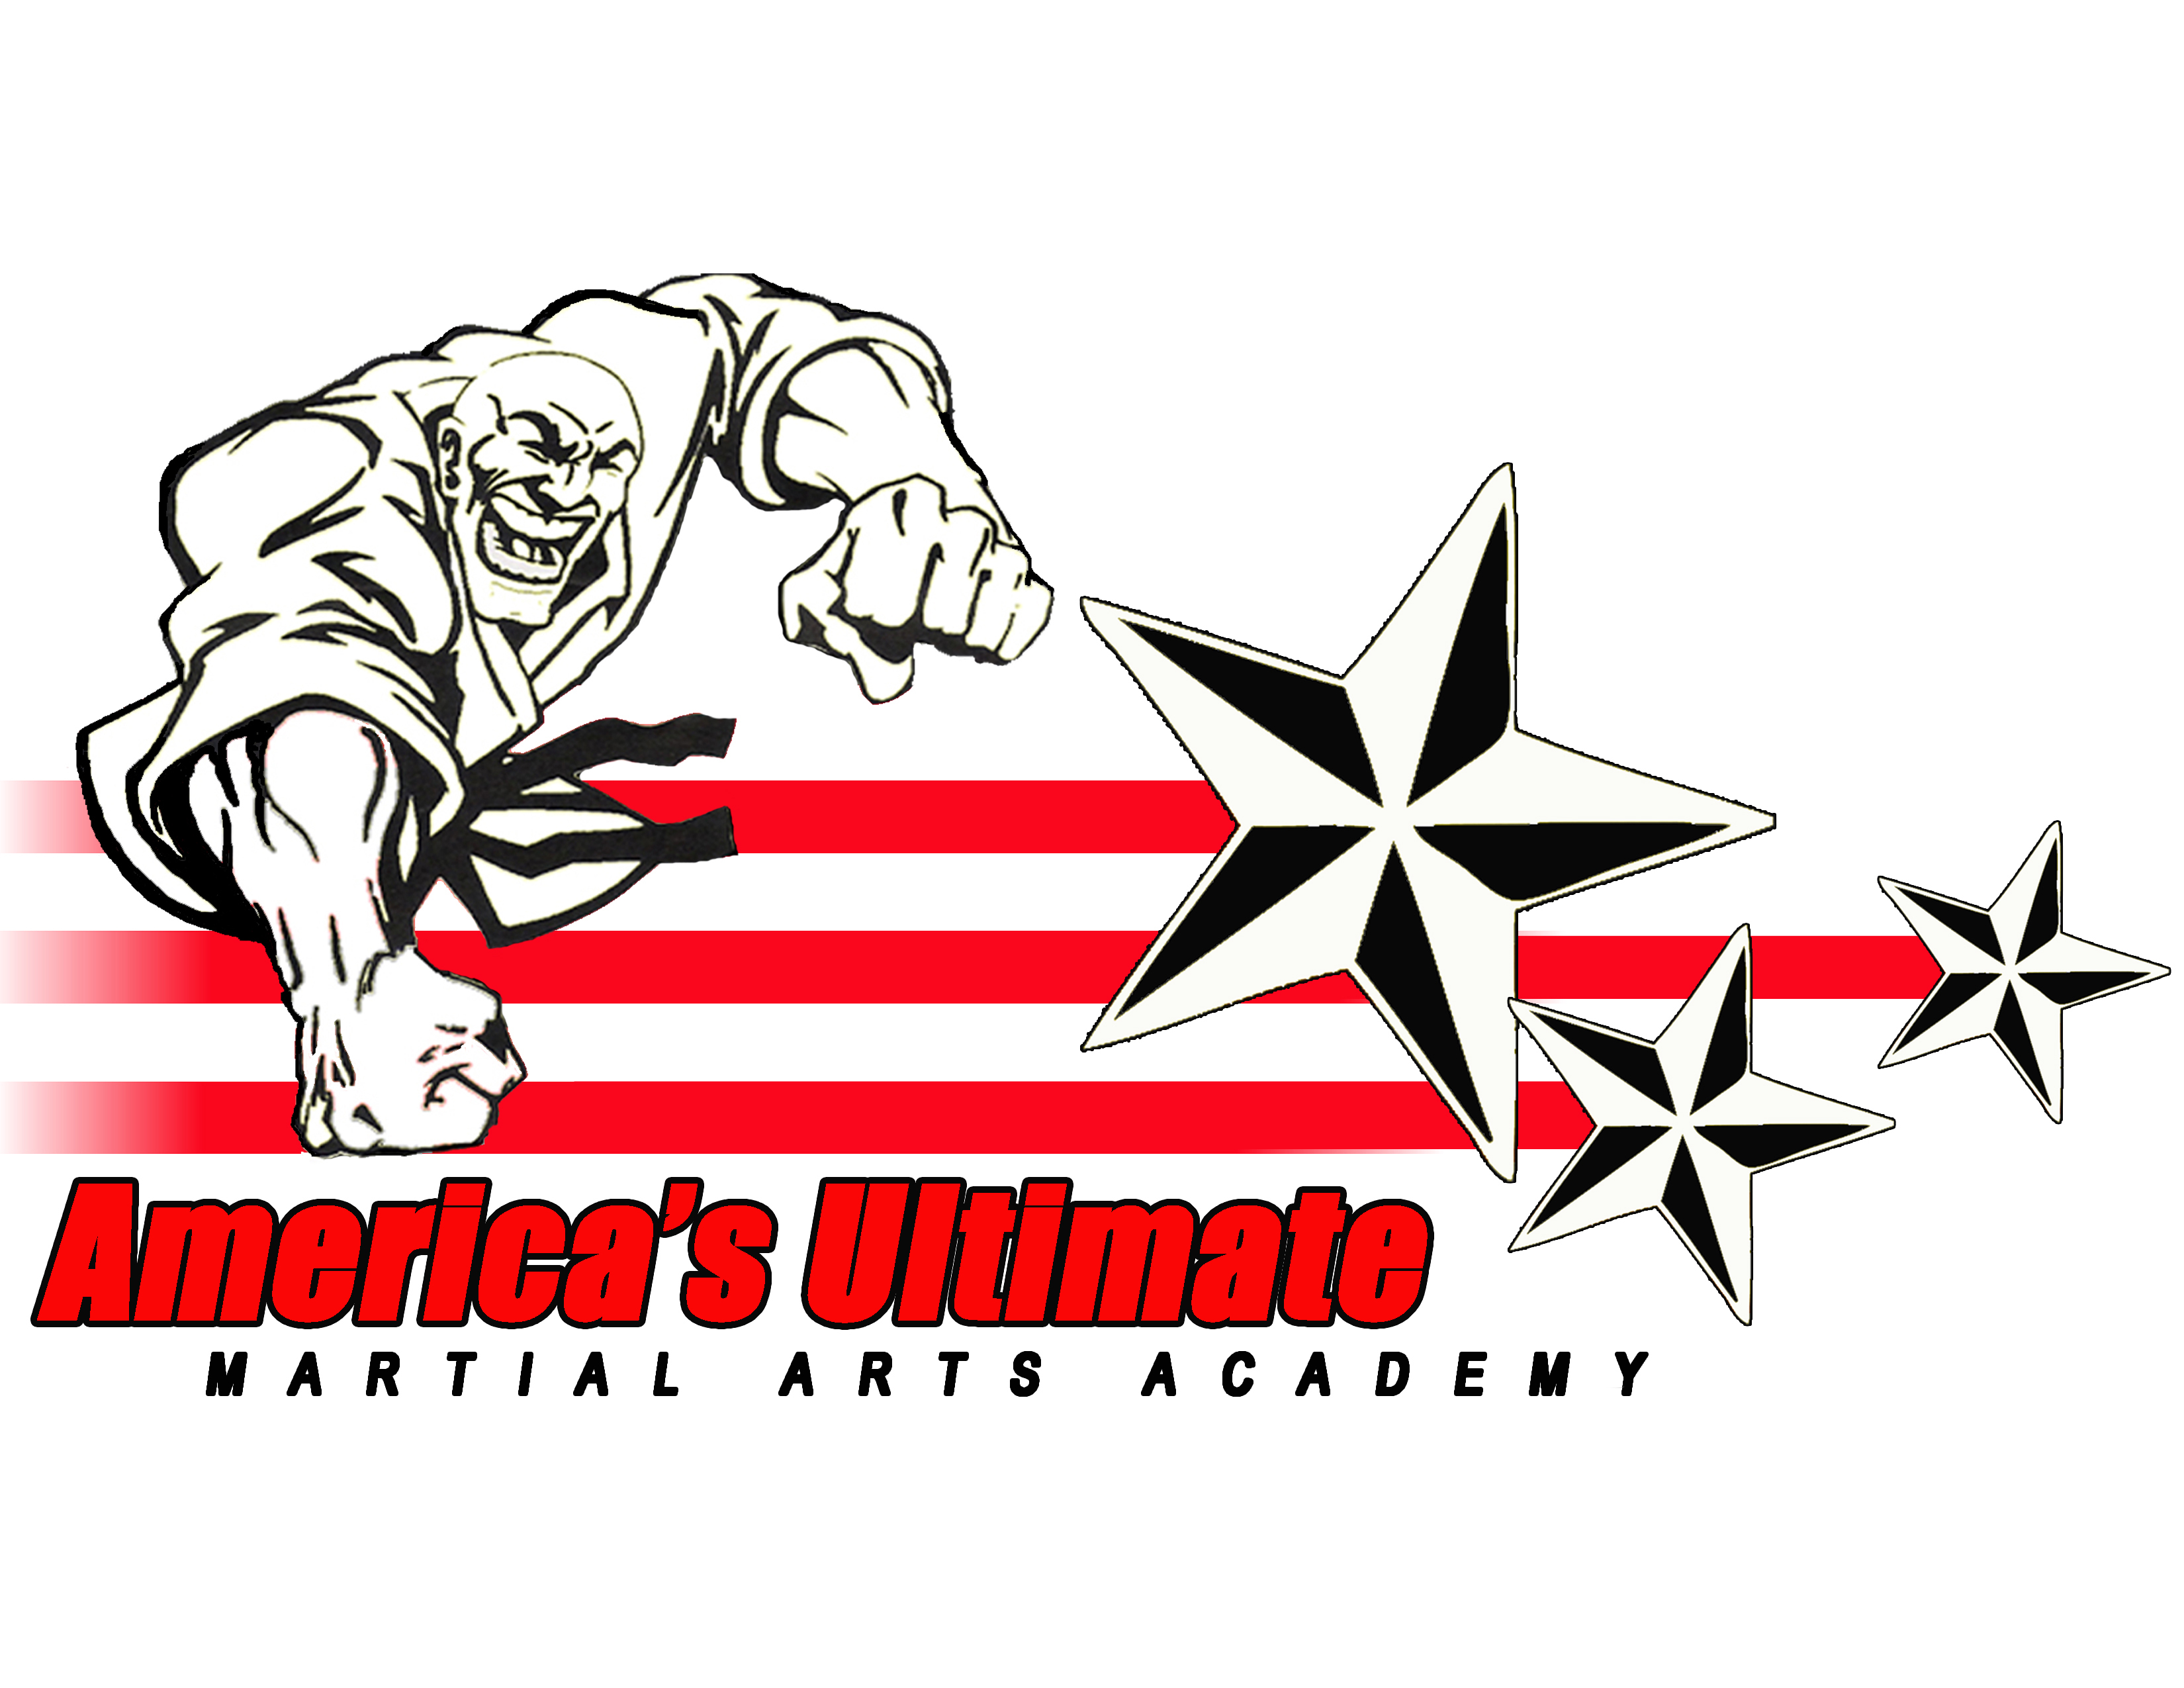 image of the America's Ultimate Martial Arts Academy